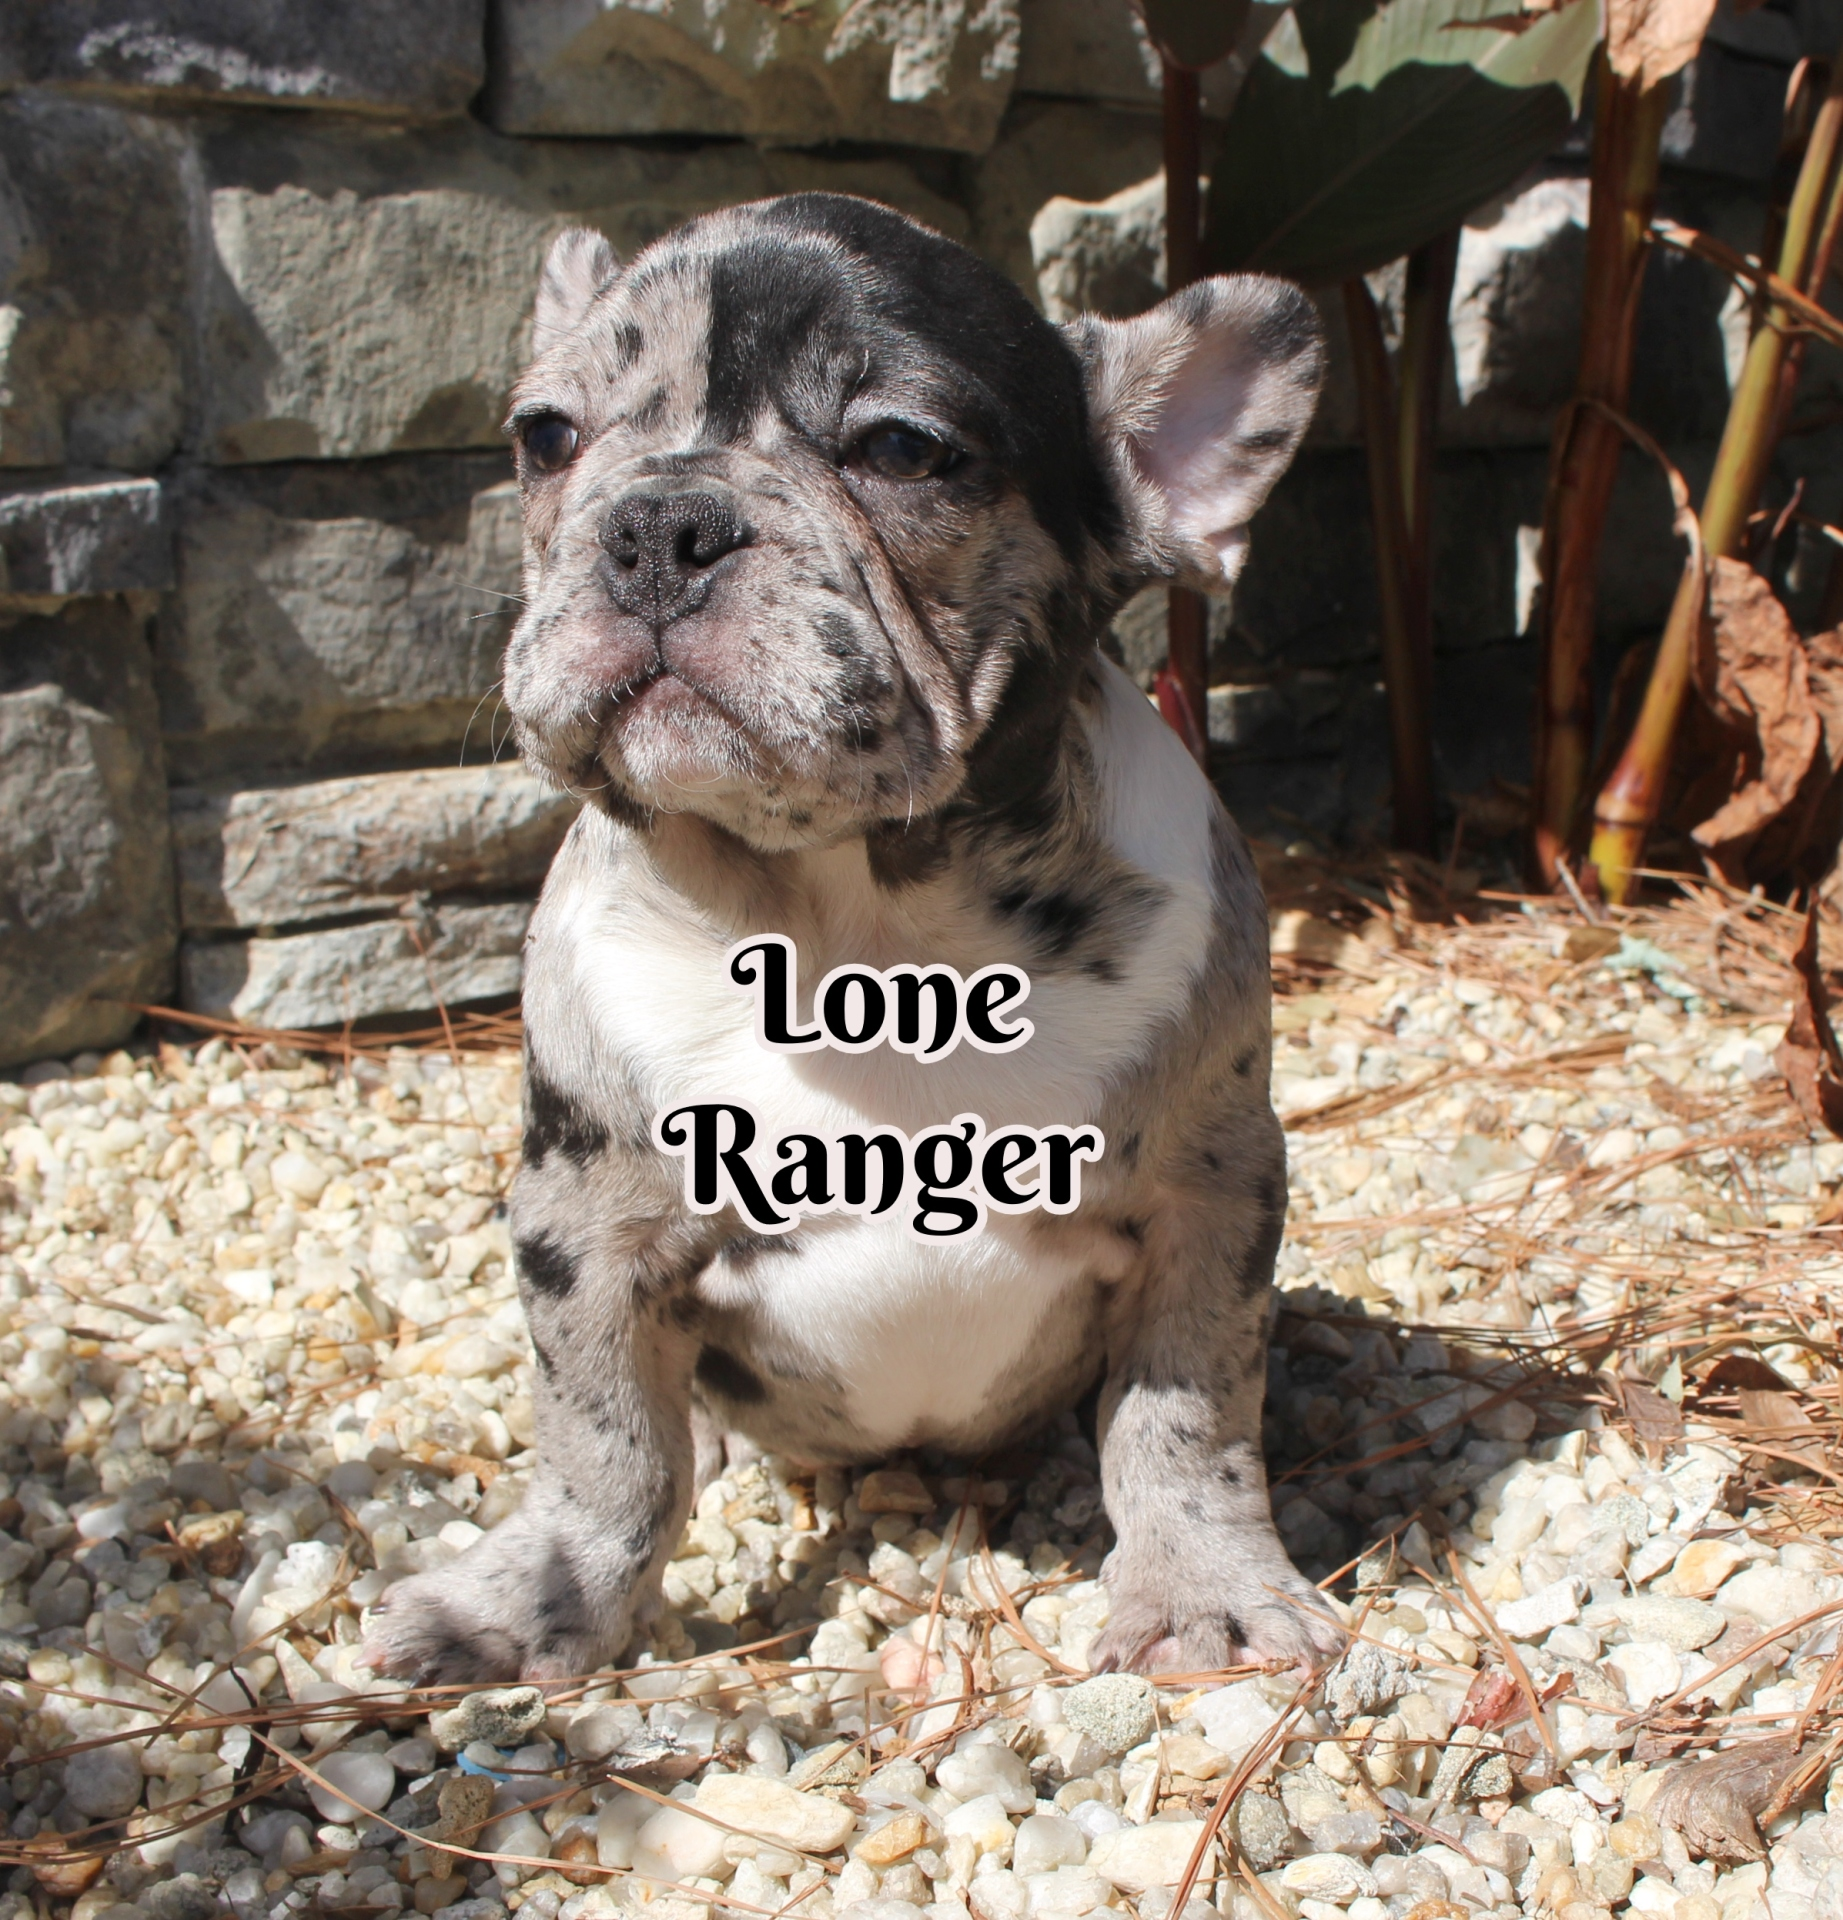 #FrenchBulldogPuppies #MerleFrenchBulldog #Frenchie #AvailablePuppies #AKCRegFrenchBulldog #SouthernTerritoryFrenchies #LoneRanger